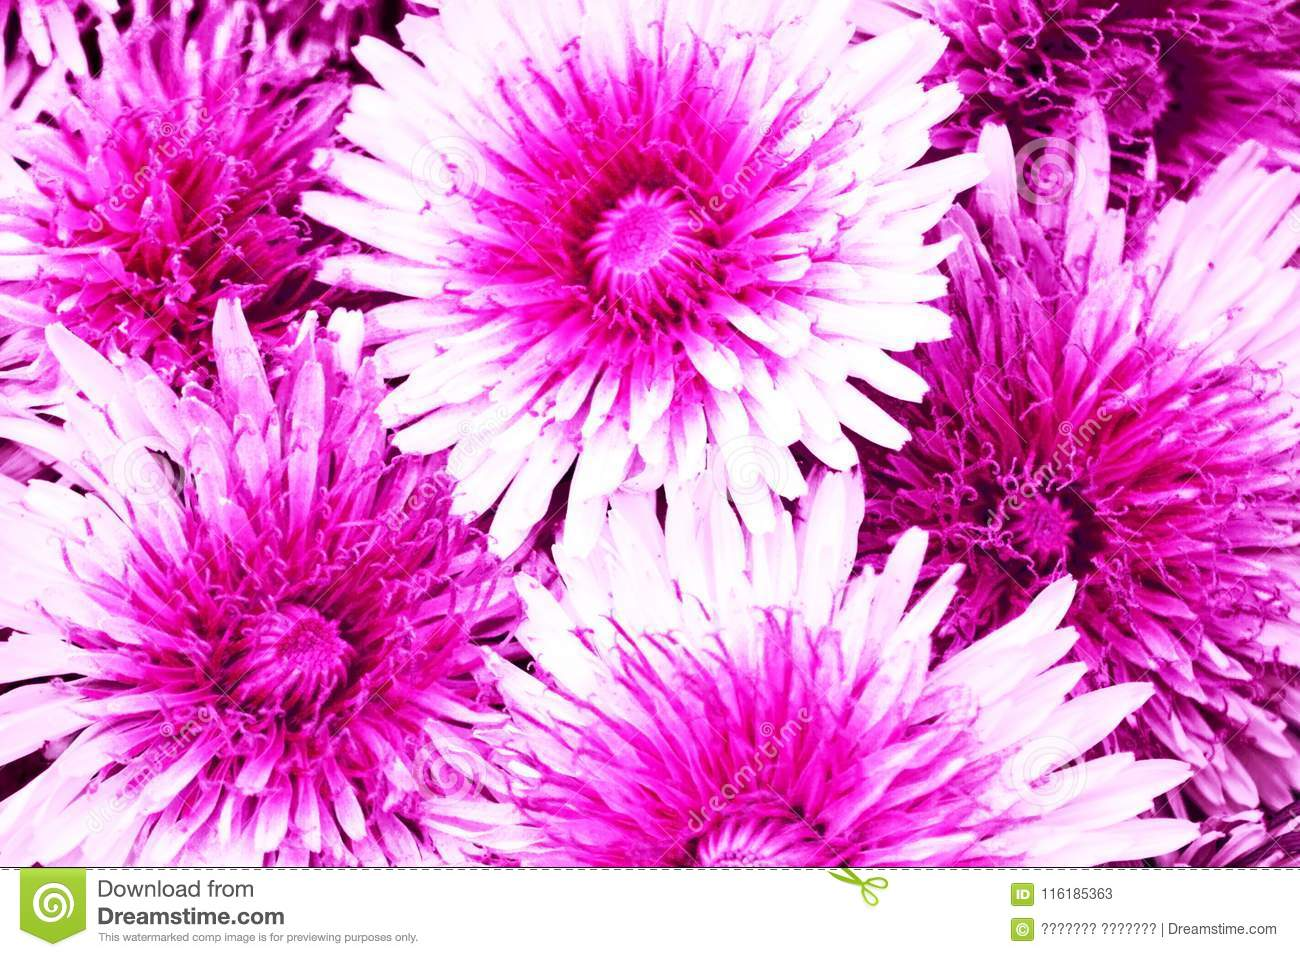 Background Of Terry Flowers With White Crimson Flowers Stock Image